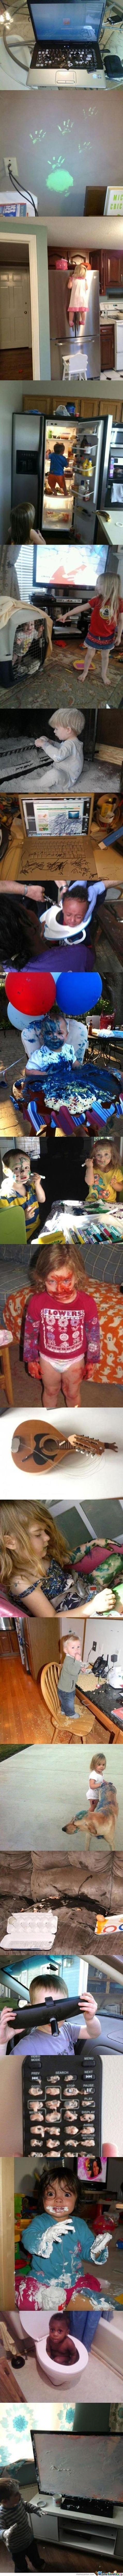 Don't Leave Kids Alone...